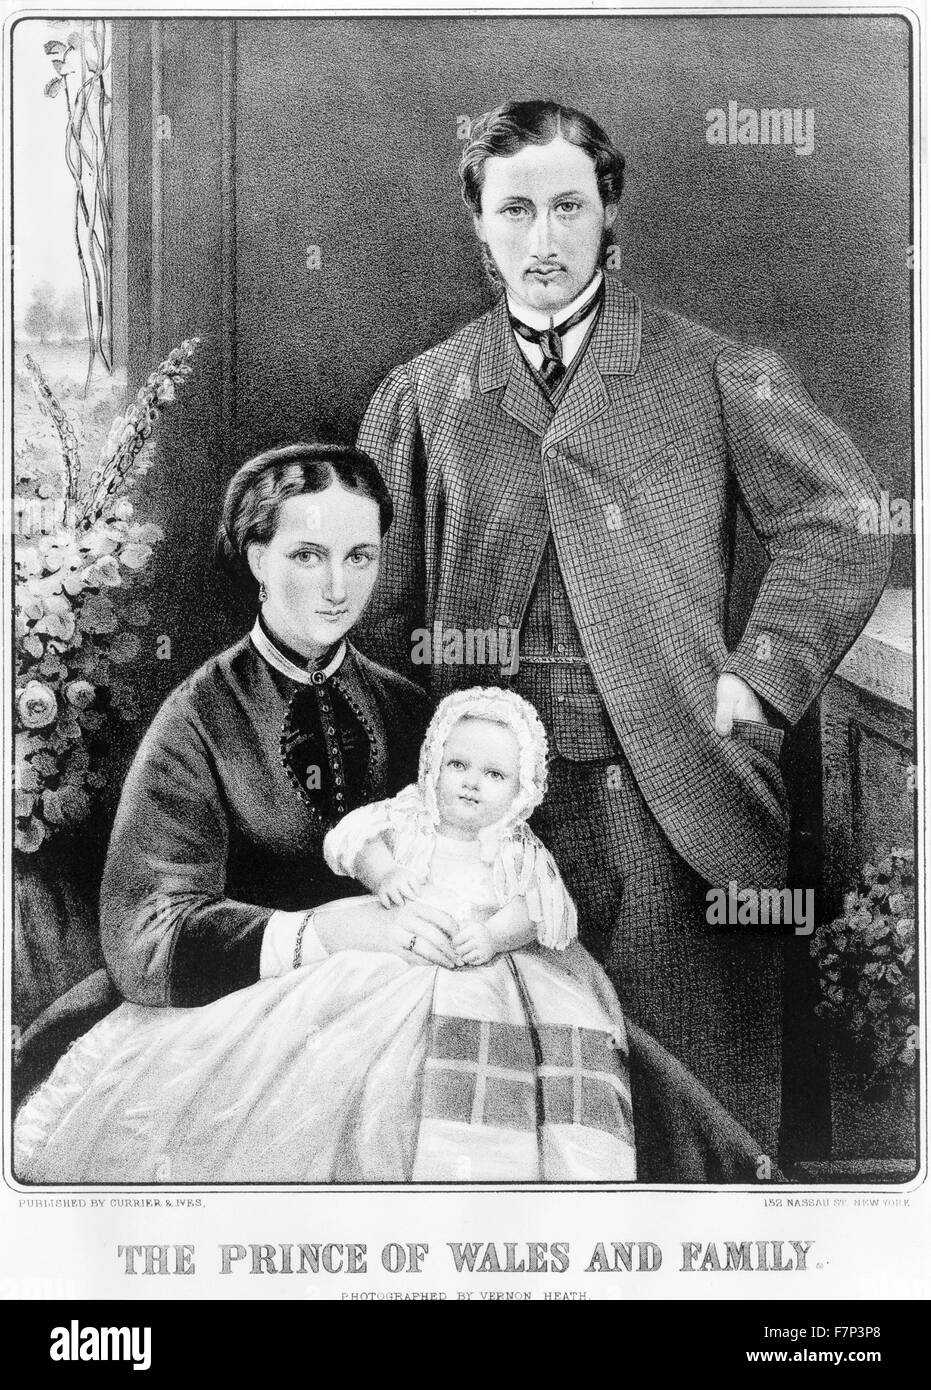 portrait of (King Edward VII) as Prince of Wales (1841-1910) with family. Dated 1870 - Stock Image